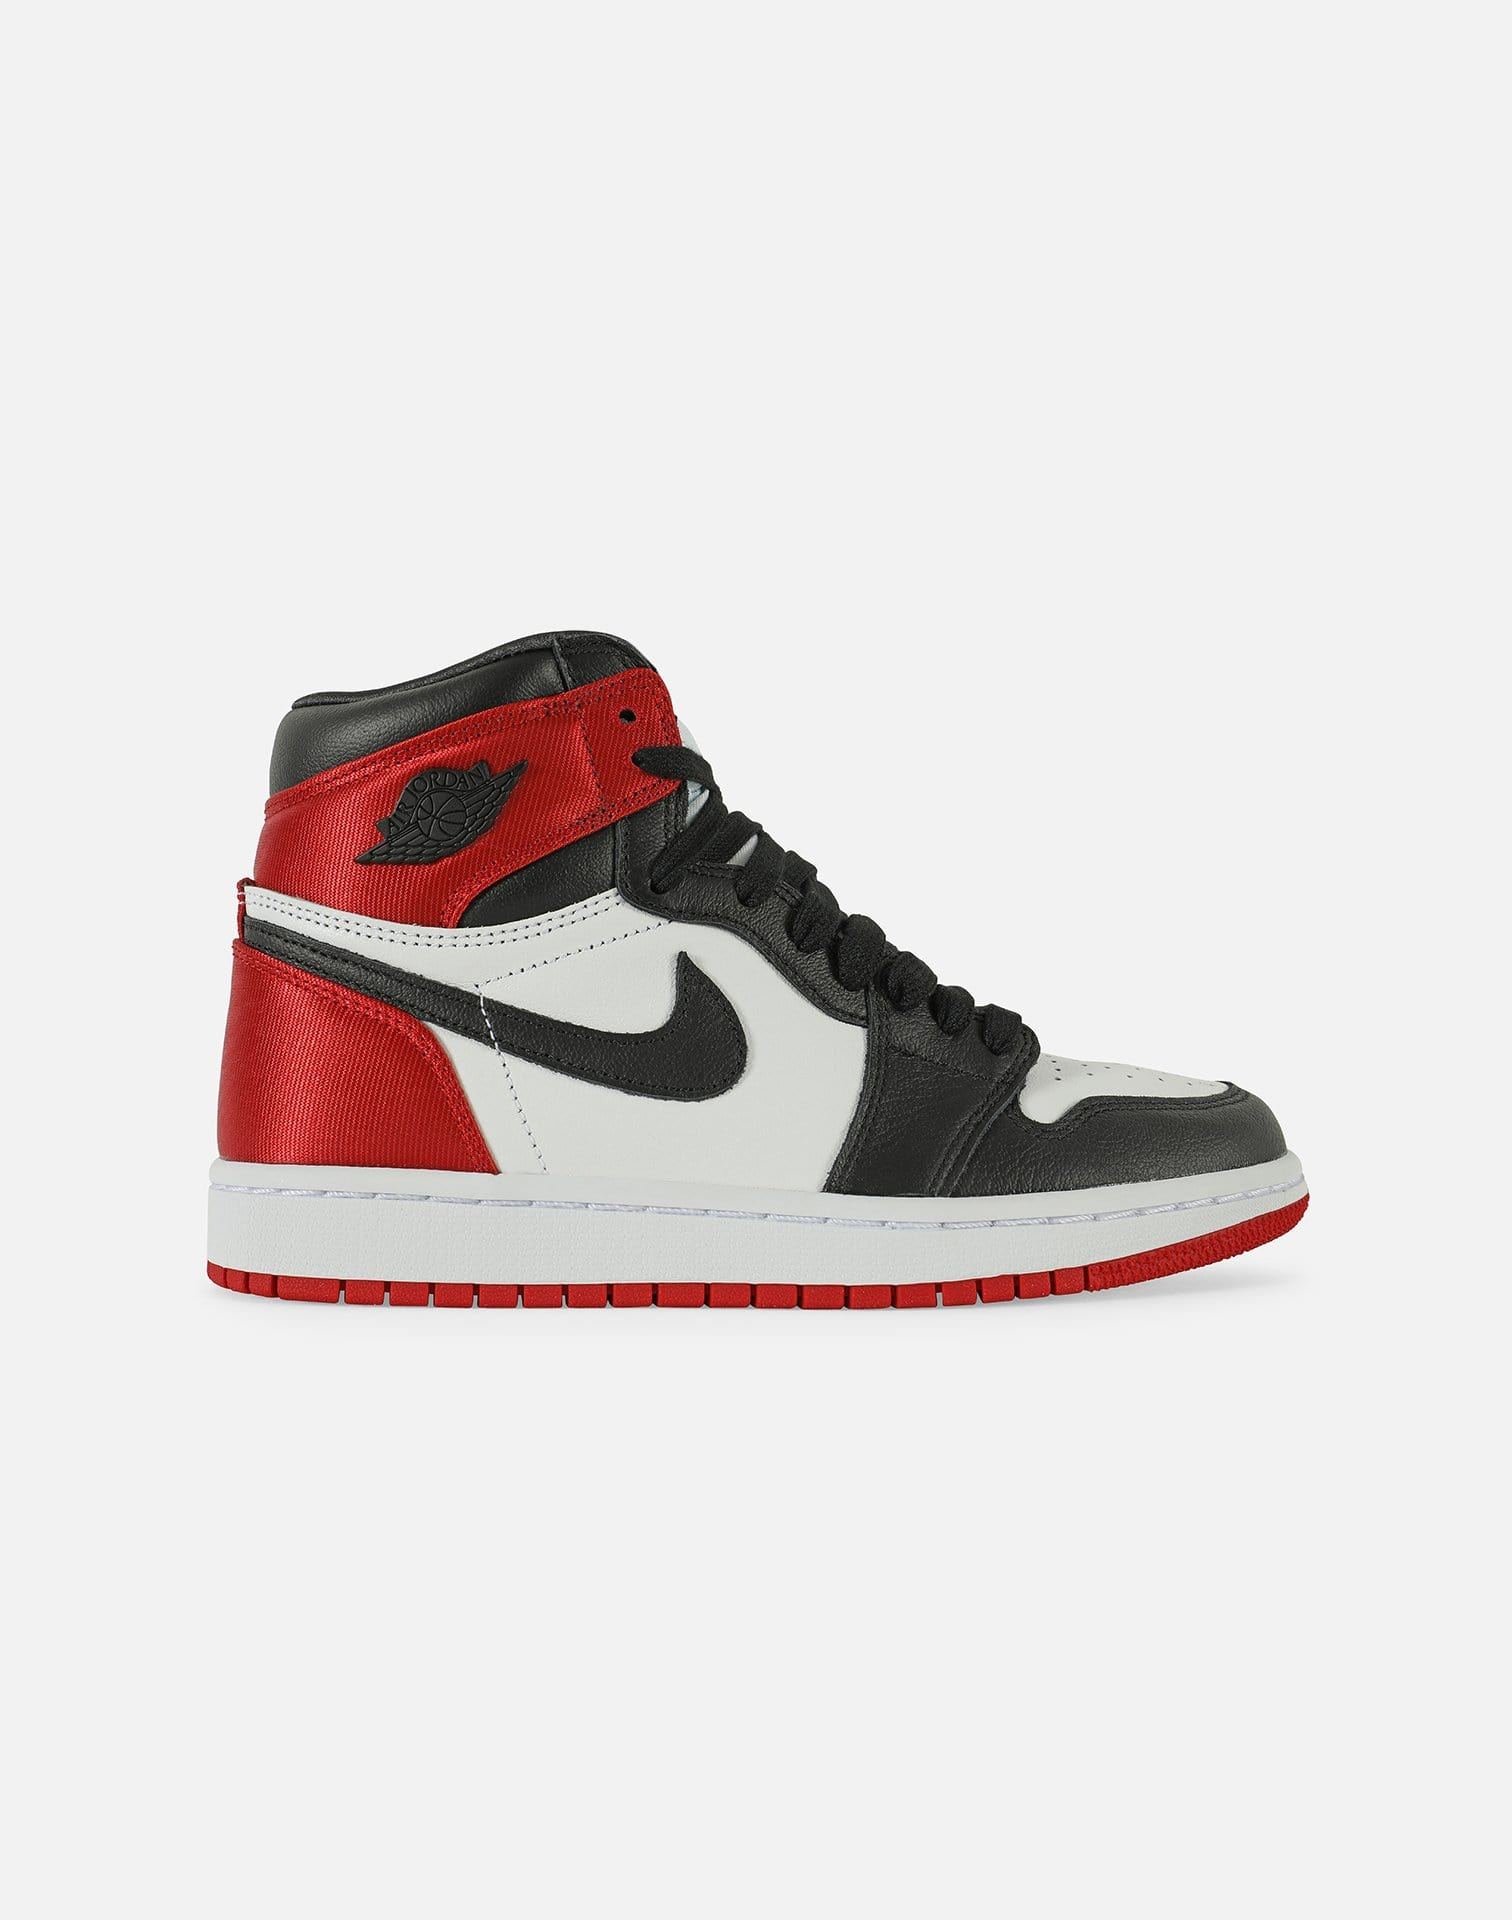 AJ1 HIGH OG BLK/WHT/RED